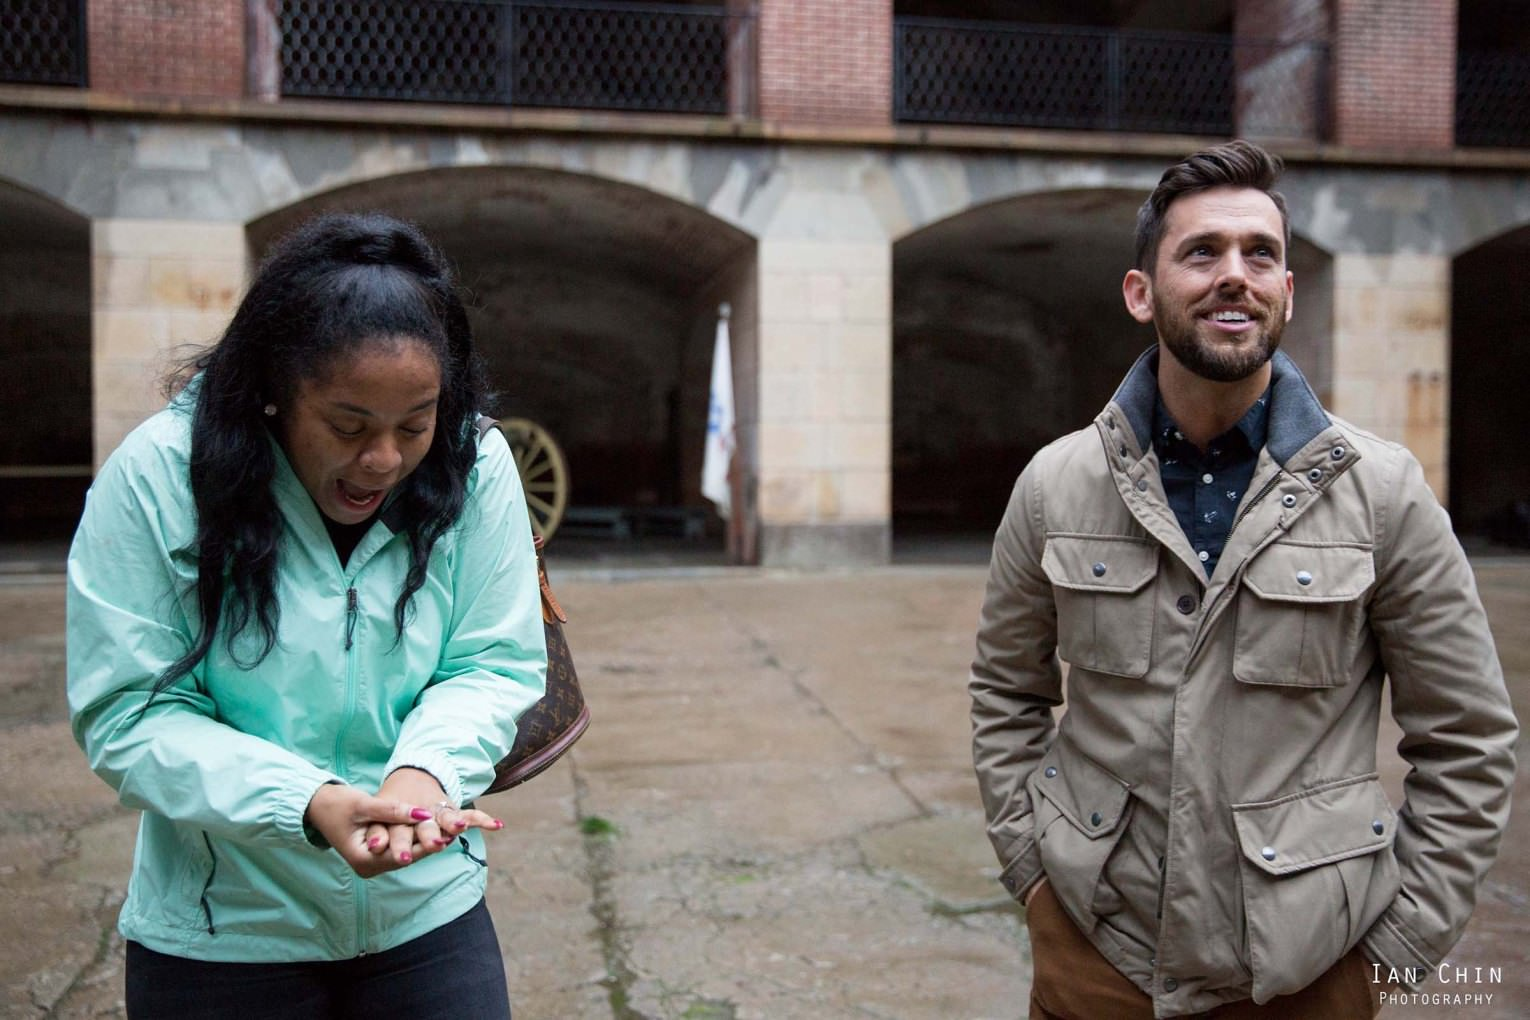 fort point marriage proposal in san francisco girl looking at ring on her hand in a green jacket while her boyfriend stands there smiling